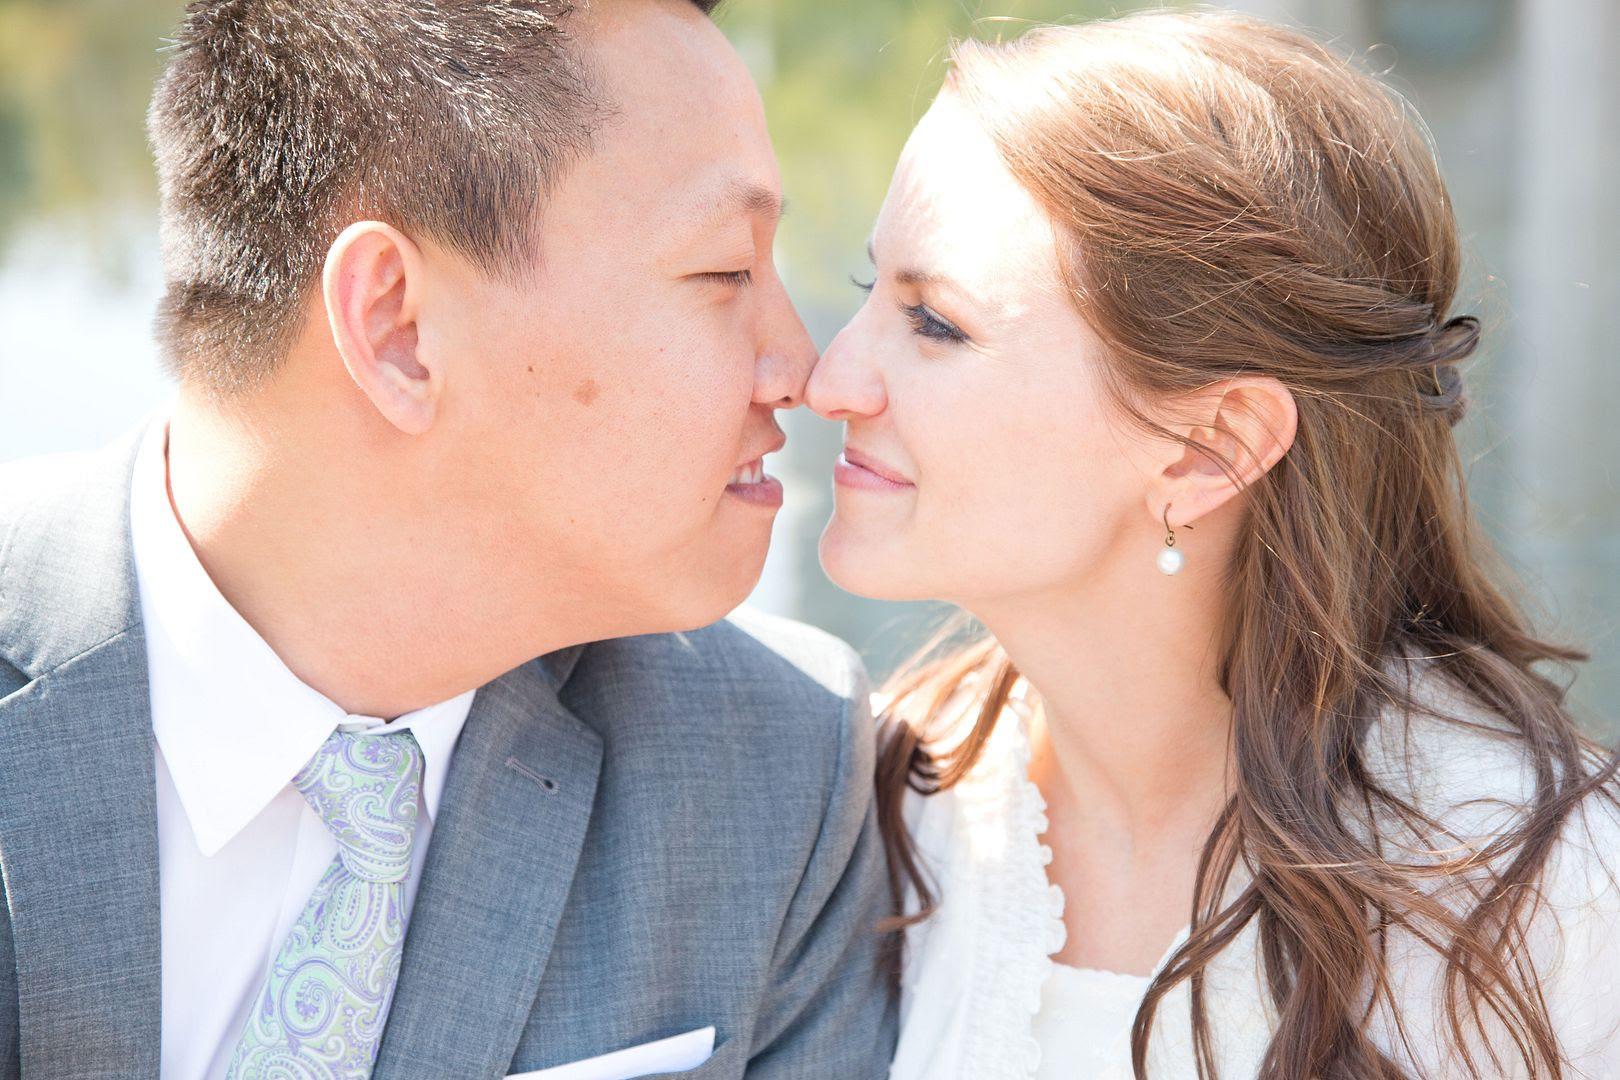 Nose Kisses photo emilybrownphotography_MichelleampMike_500_2_zps3f6641a9.jpg